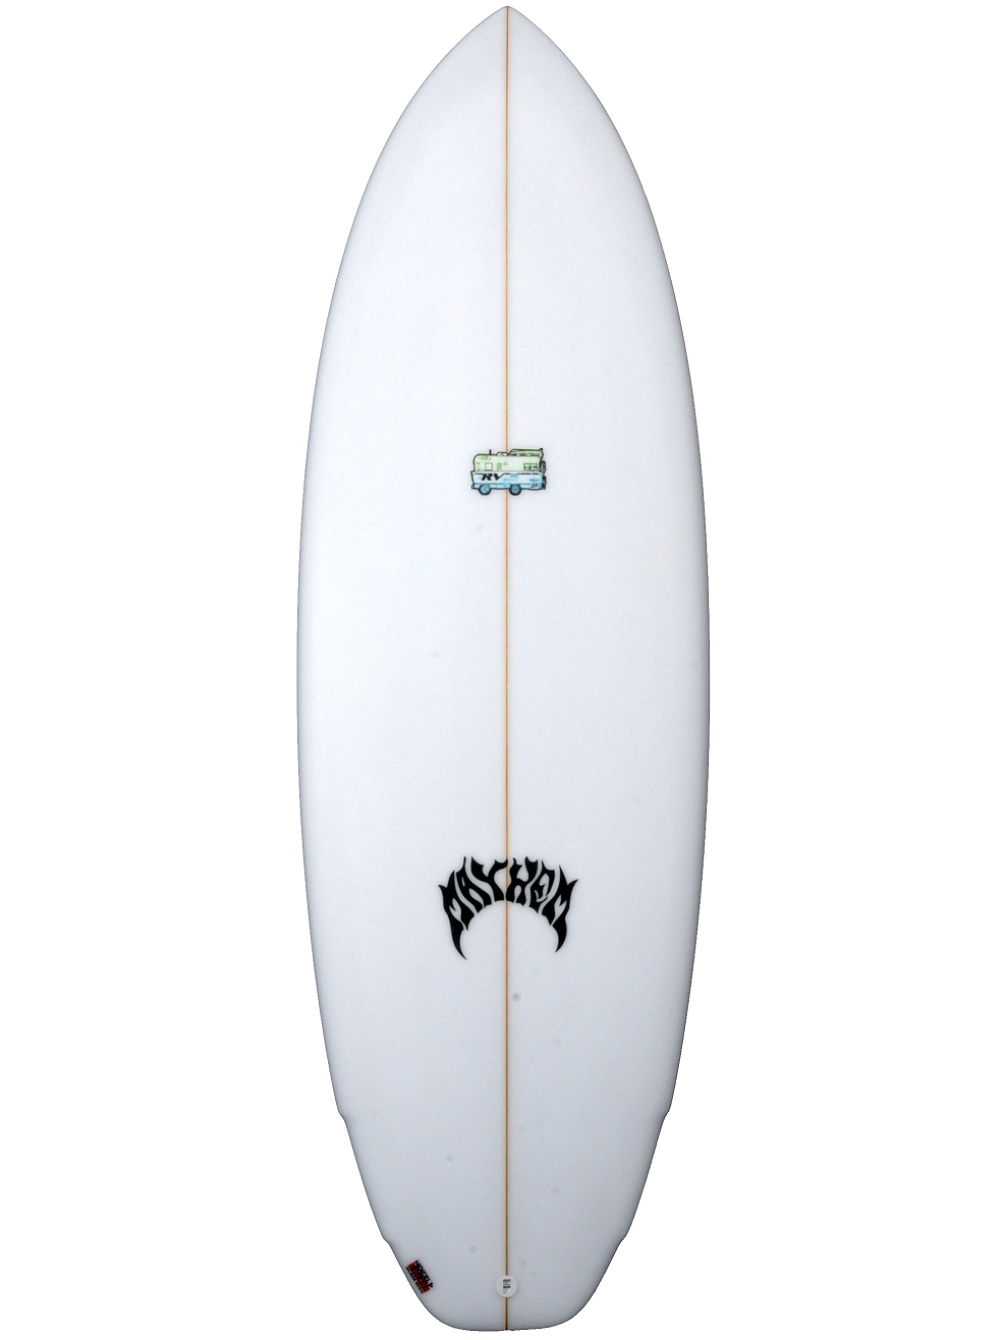 RV 5'11 Surfboard